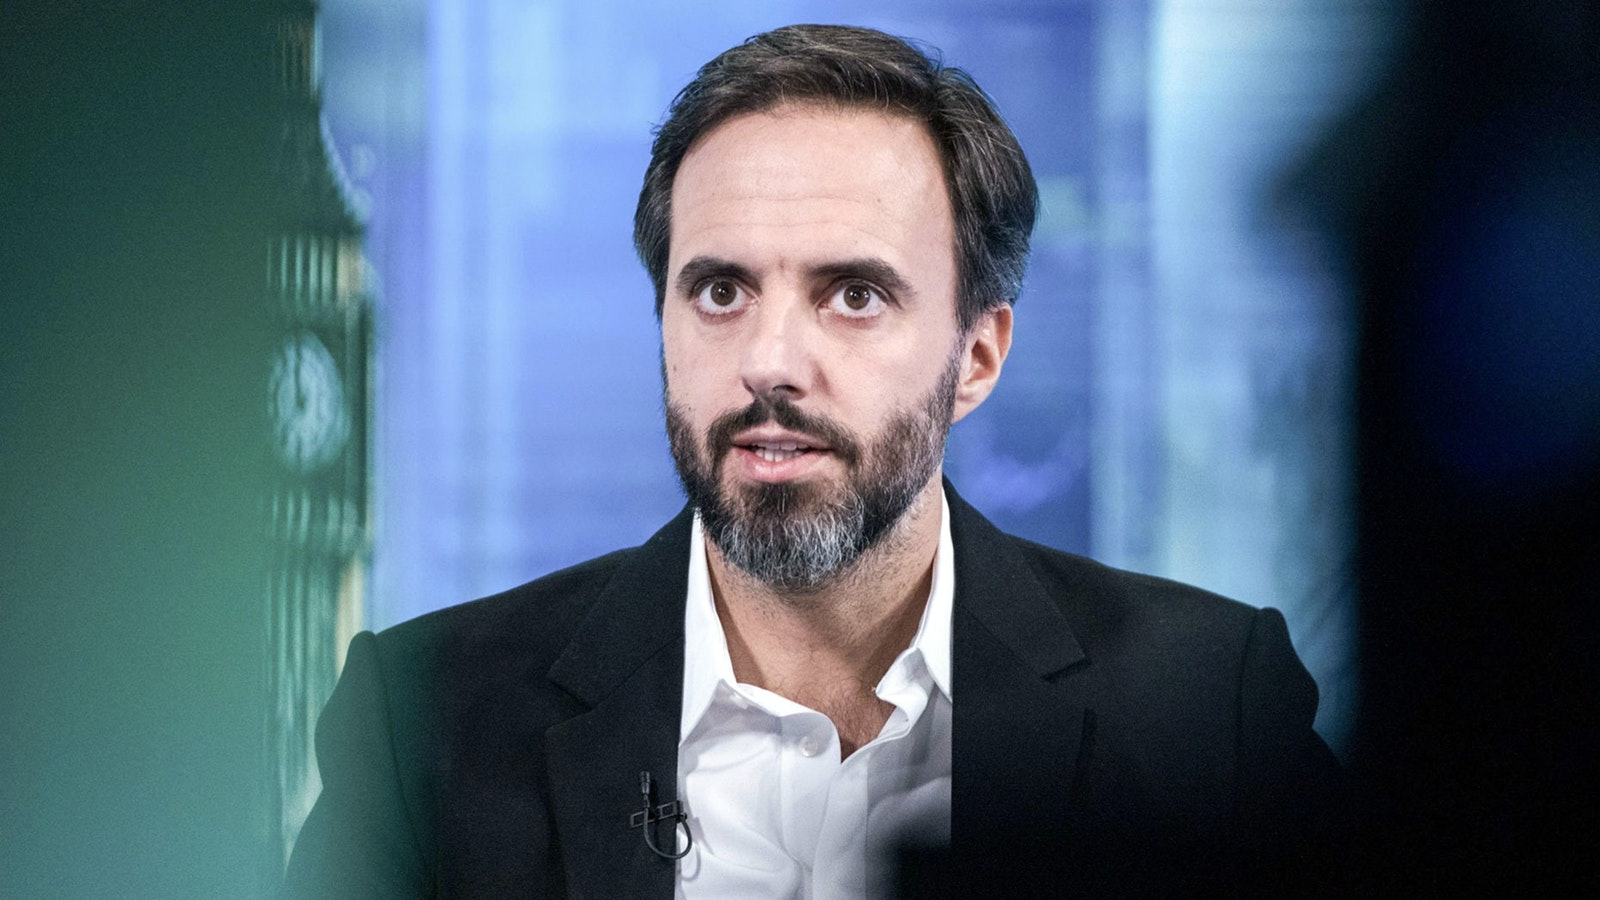 Farfetch CEO Jose Neves. Photo by Bloomberg